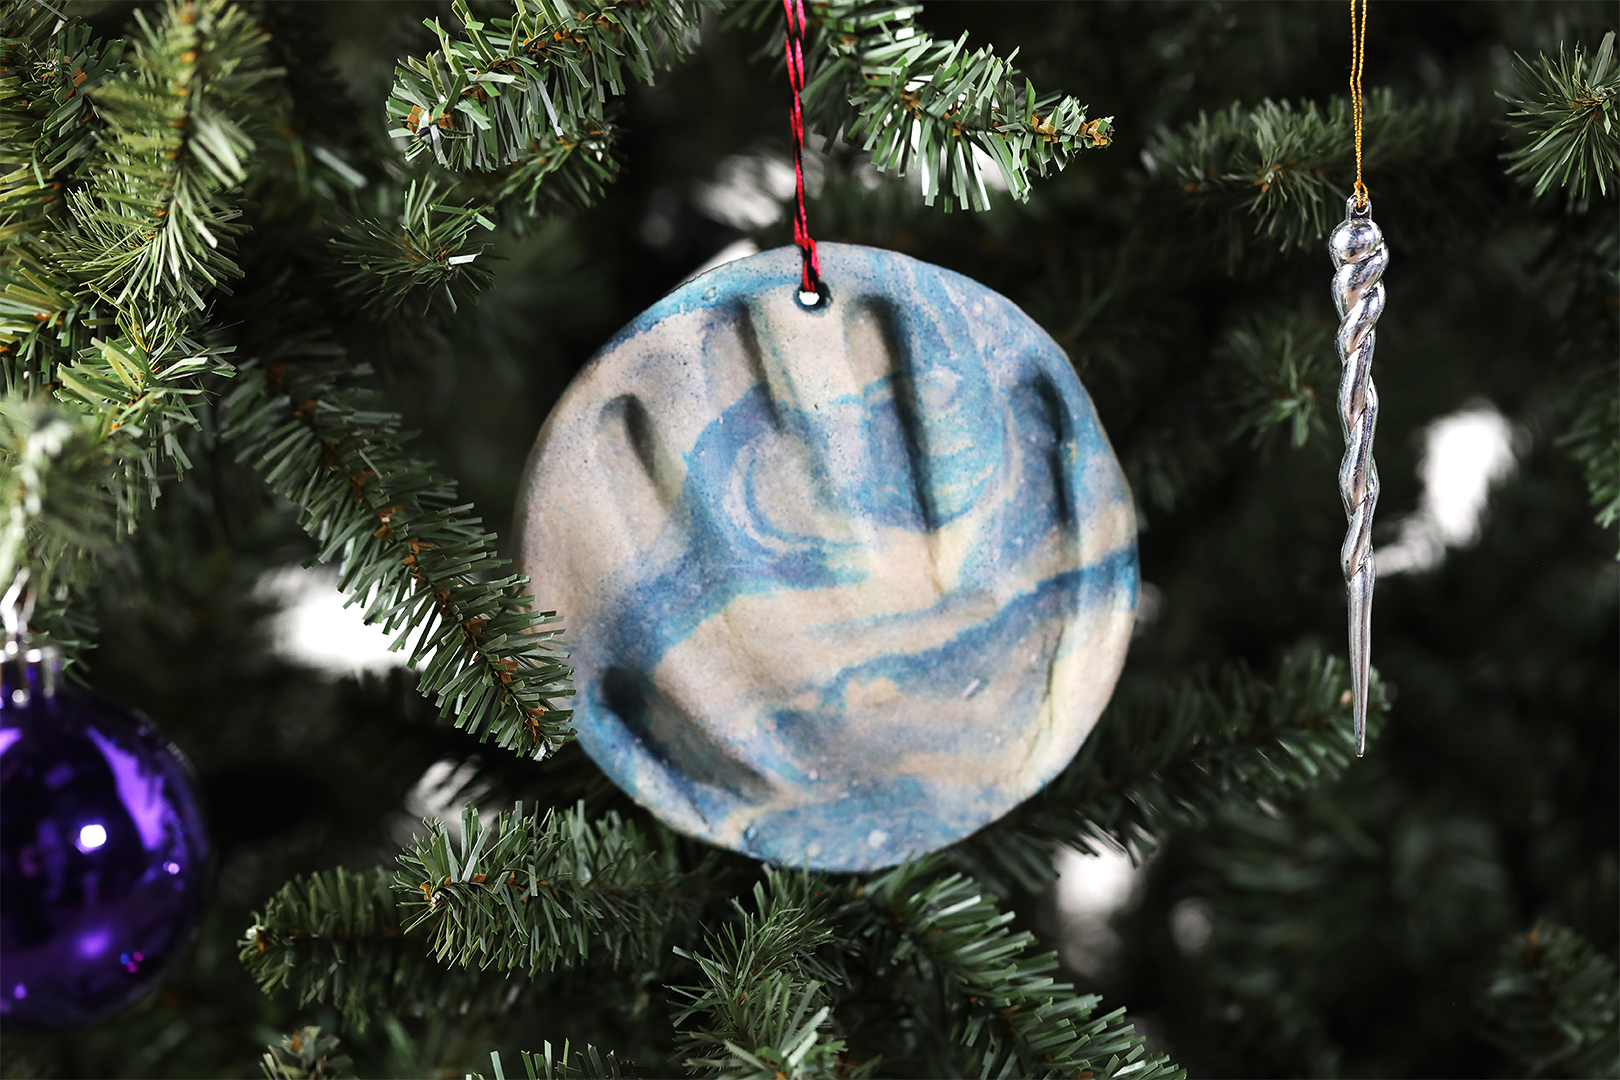 Footprint Christmas Ornament blue and white swirl handprint